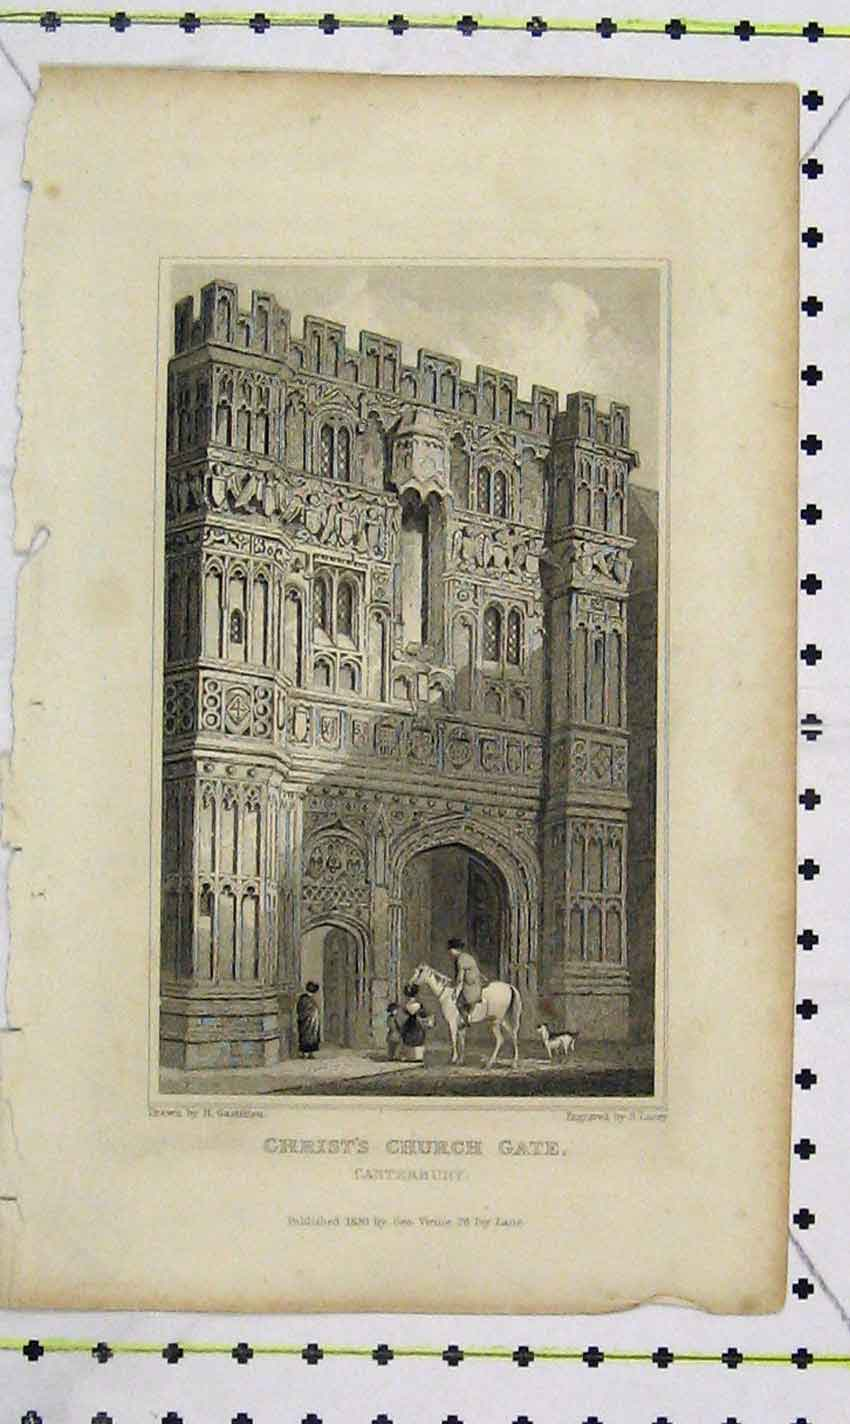 Print 1830 Lacey View Christ'S Church Gate Canterbury 127B226 Old Original